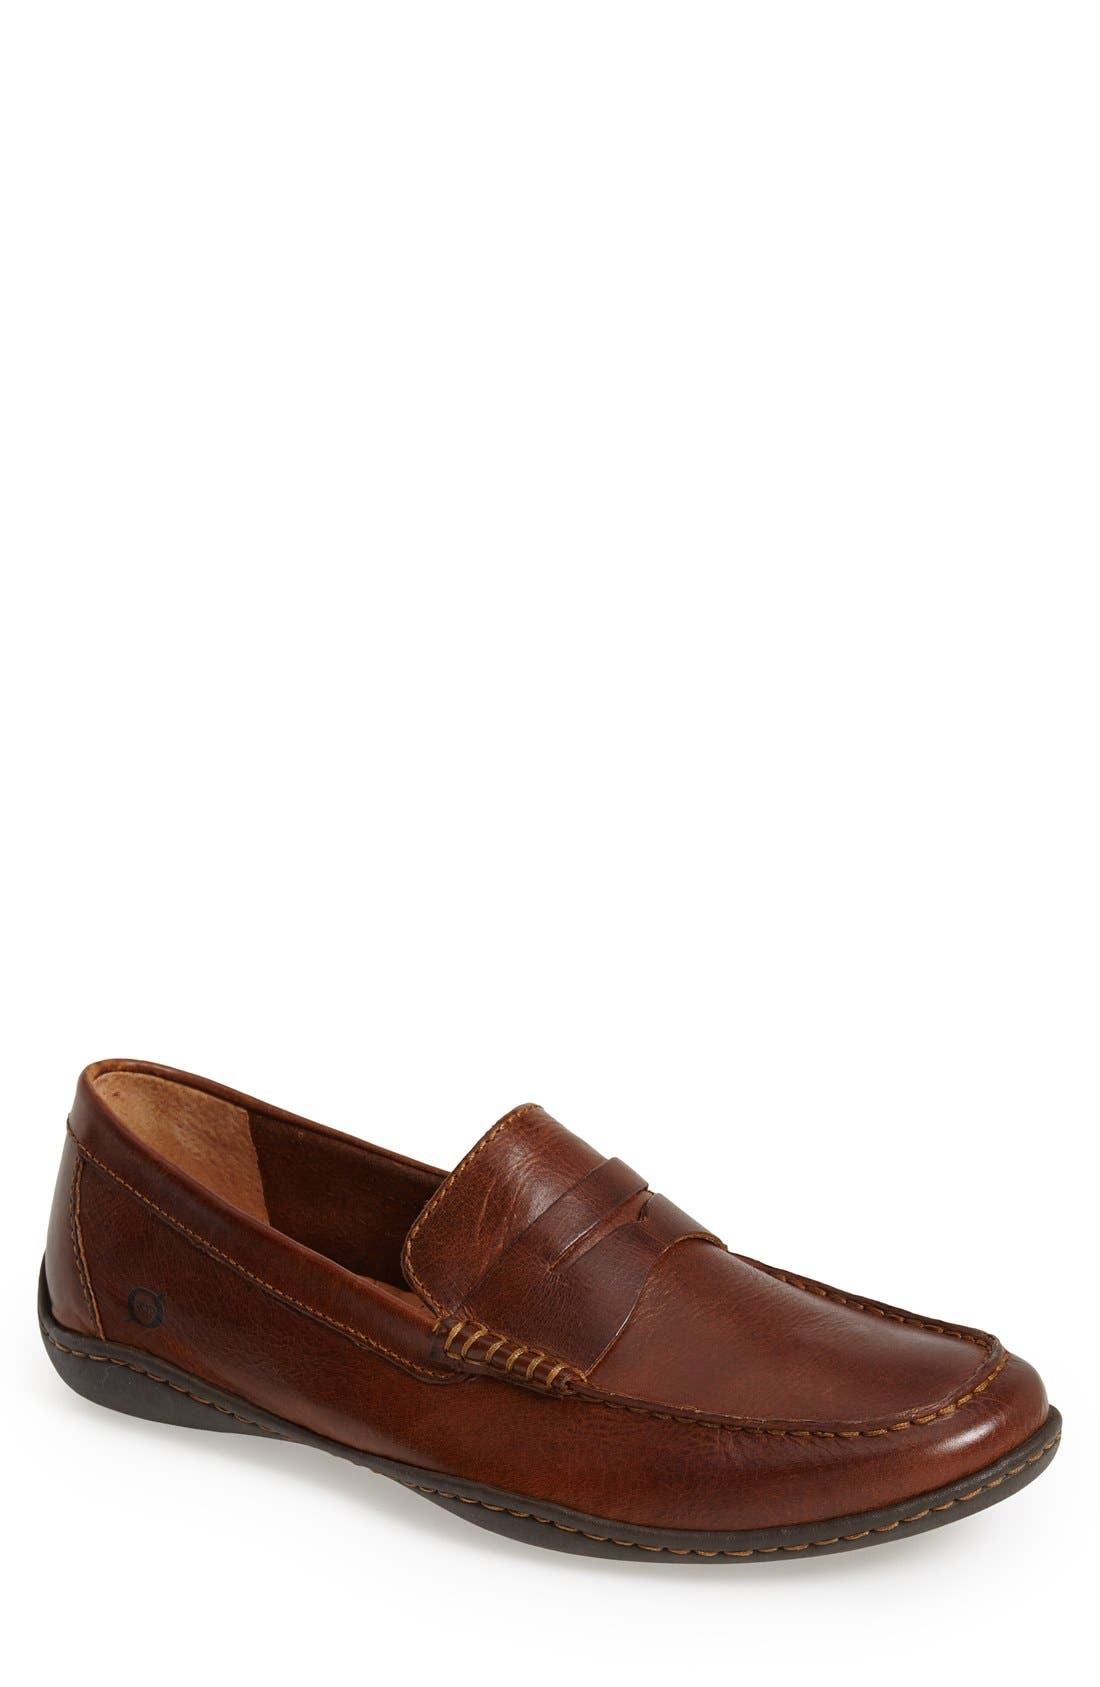 'Simon' Penny Loafer,                         Main,                         color, CYMBAL